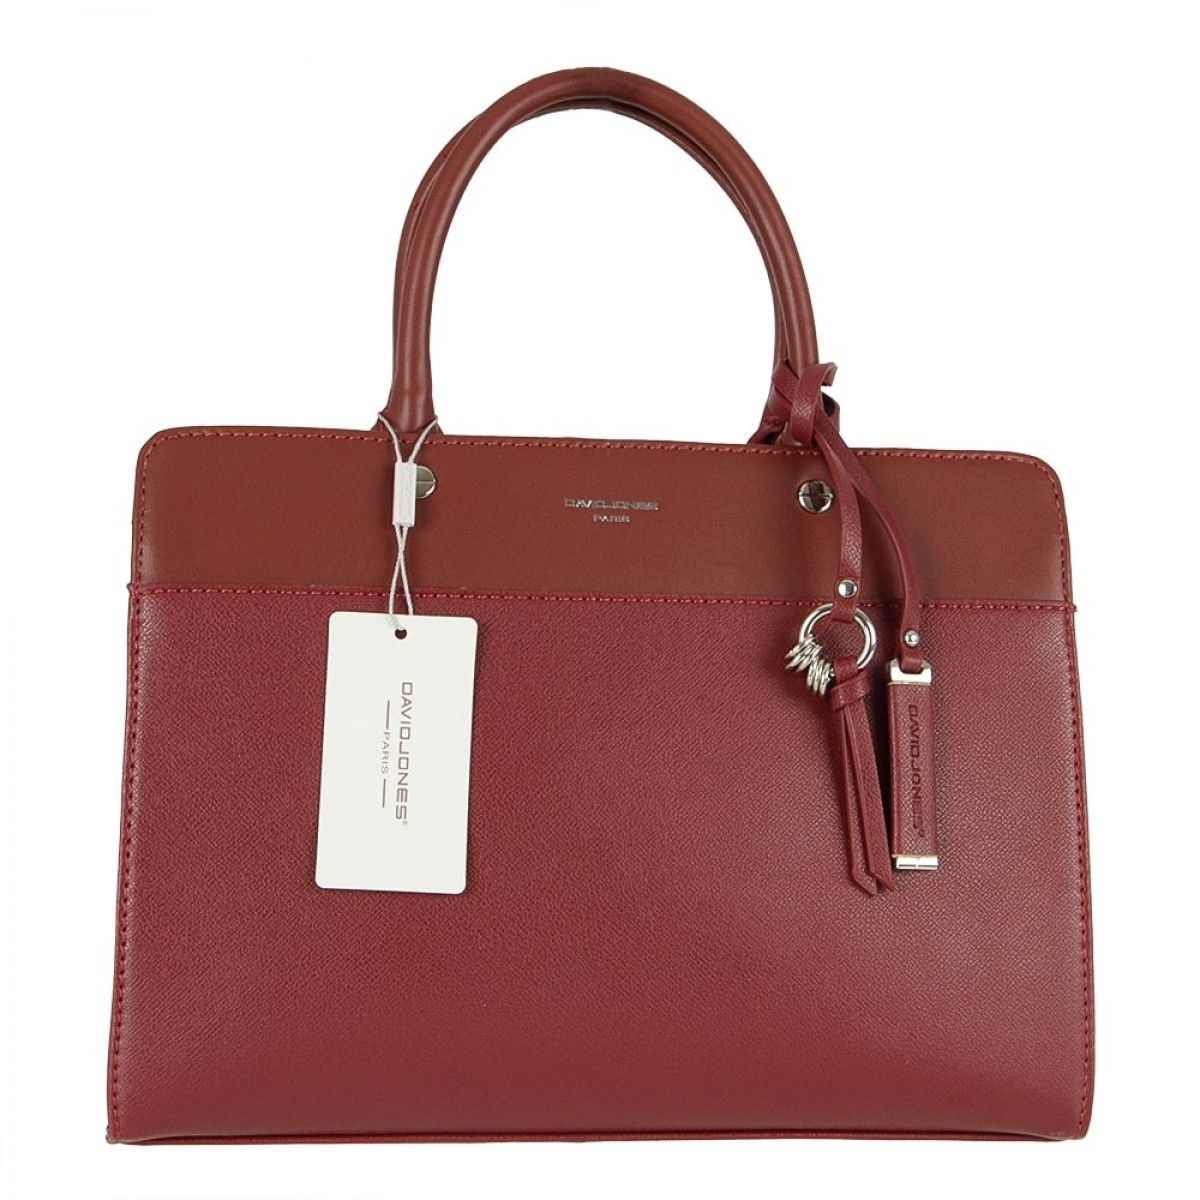 Жіноча сумка David Jones CM5338 DARK BORDEAUX